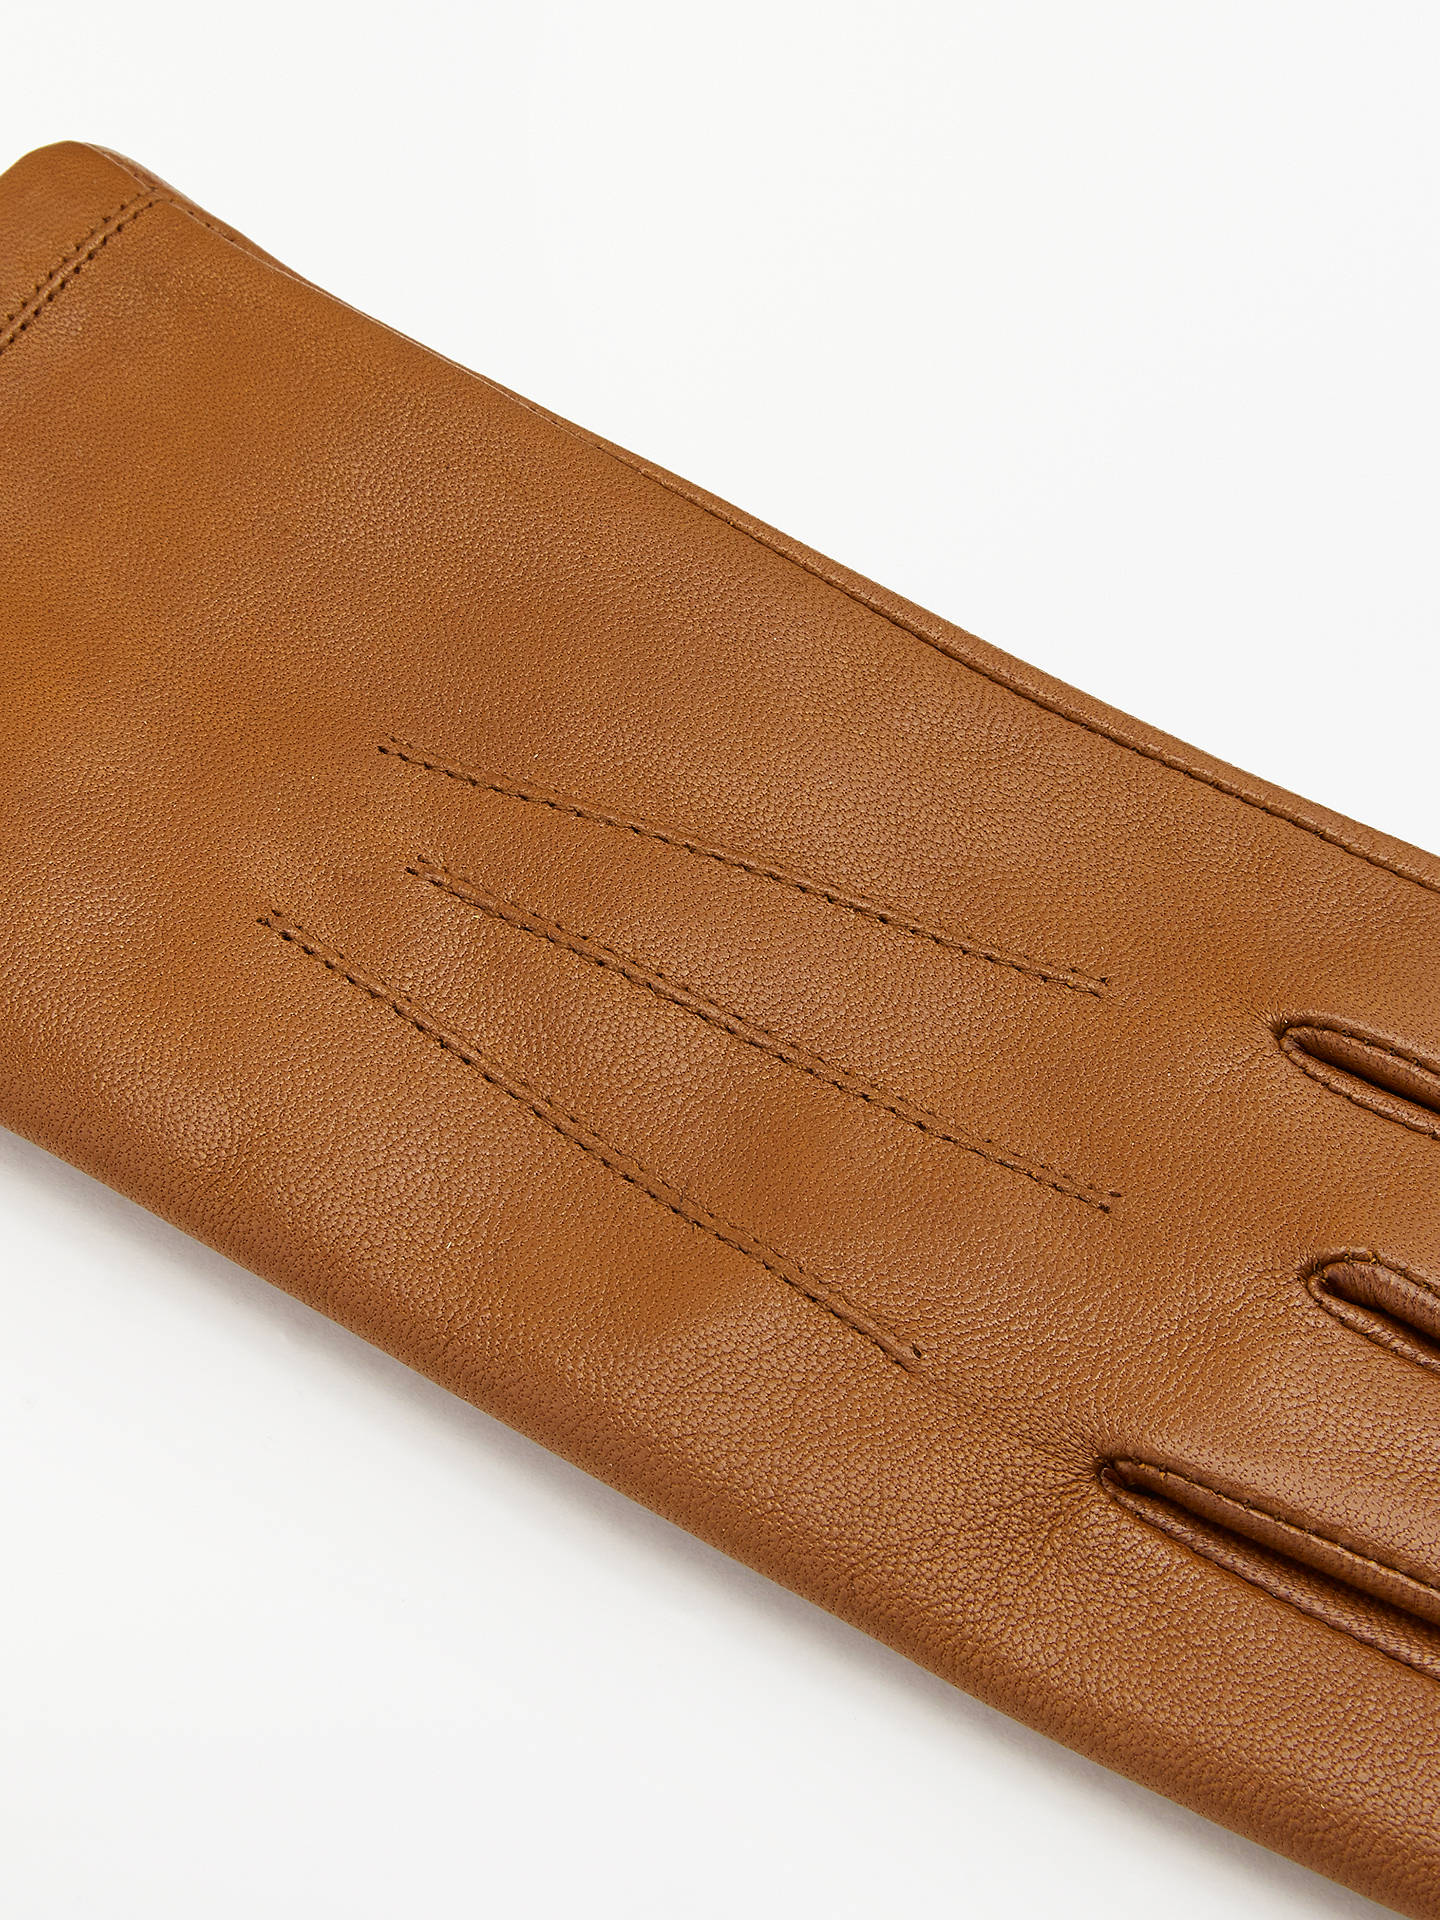 BuyJohn Lewis & Partners Leather Fleece Lined Gloves, Tan, S Online at johnlewis.com